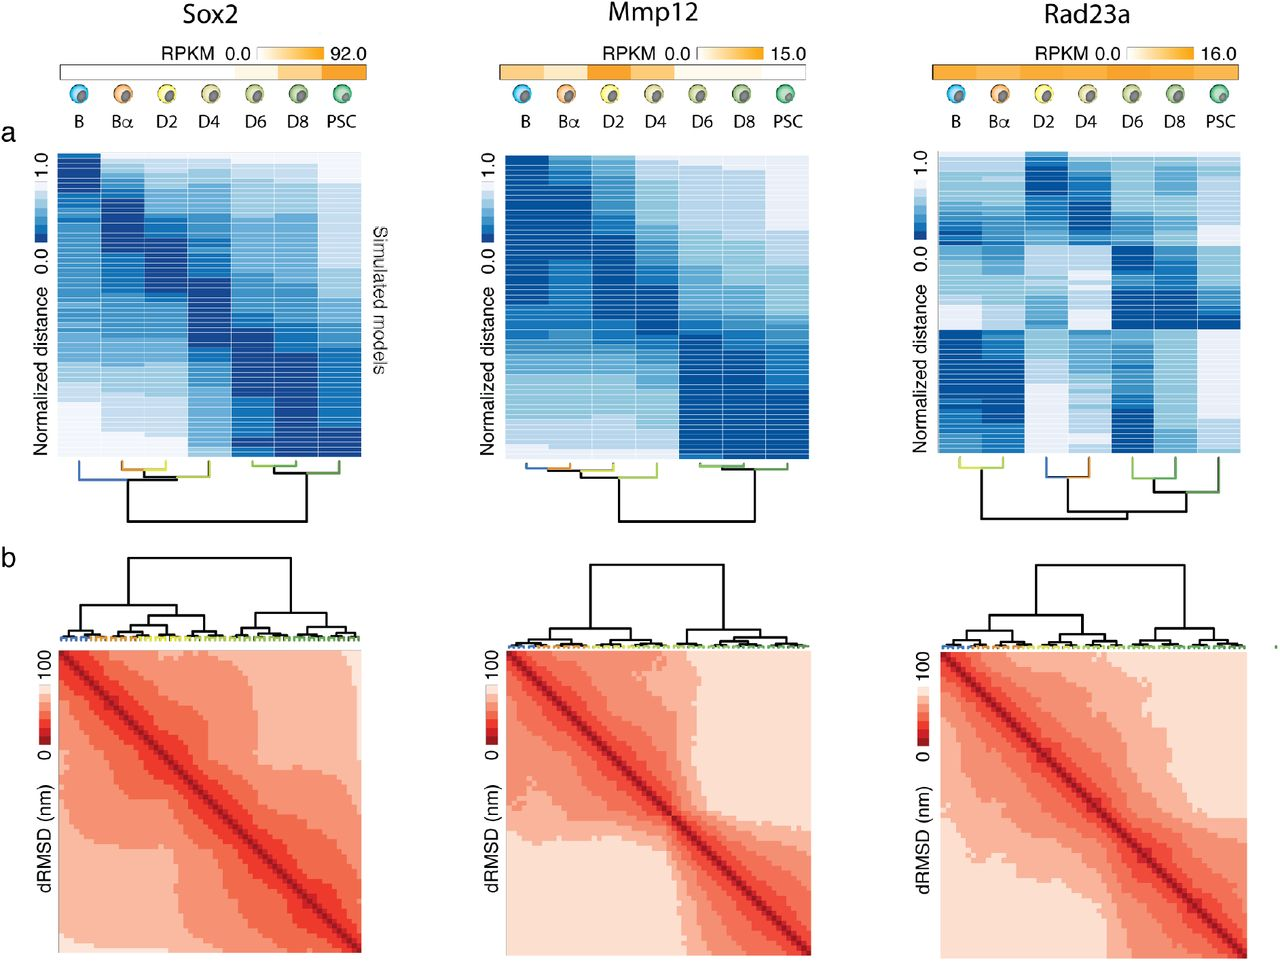 Dynamic simulations of transcriptional control during cell